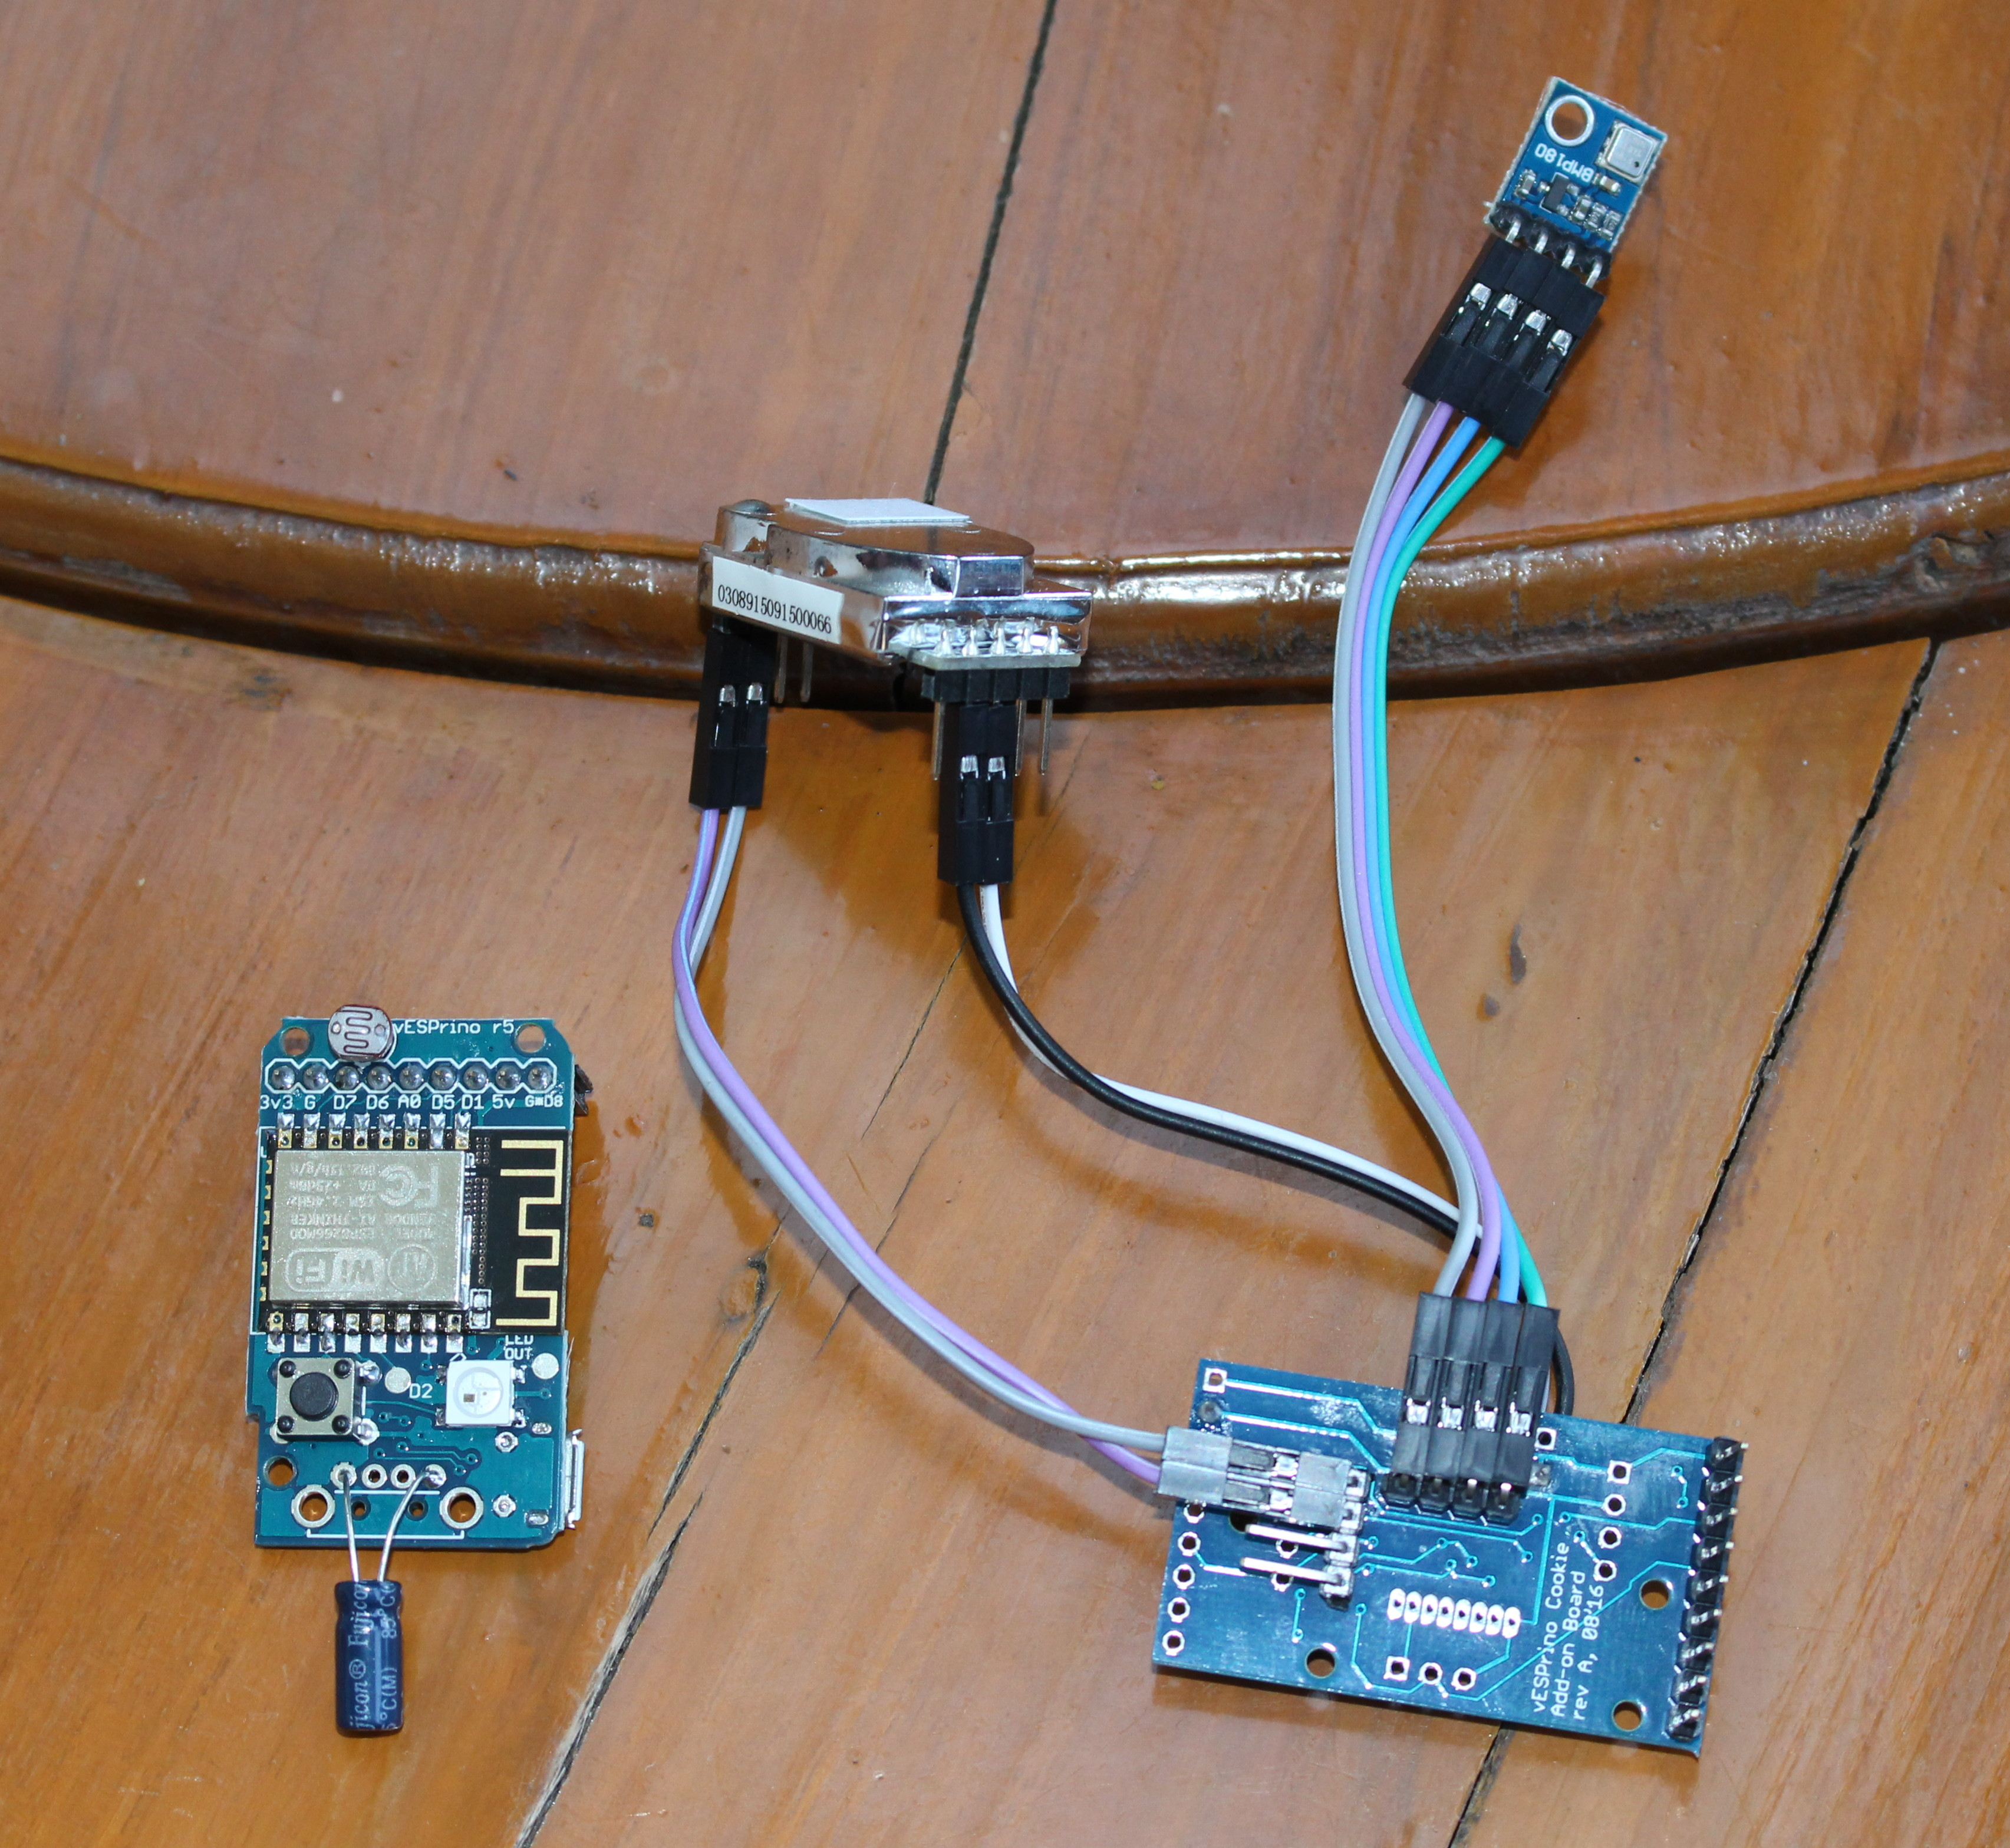 ESP8266 based Wireless Air Quality & Environmental Monitors